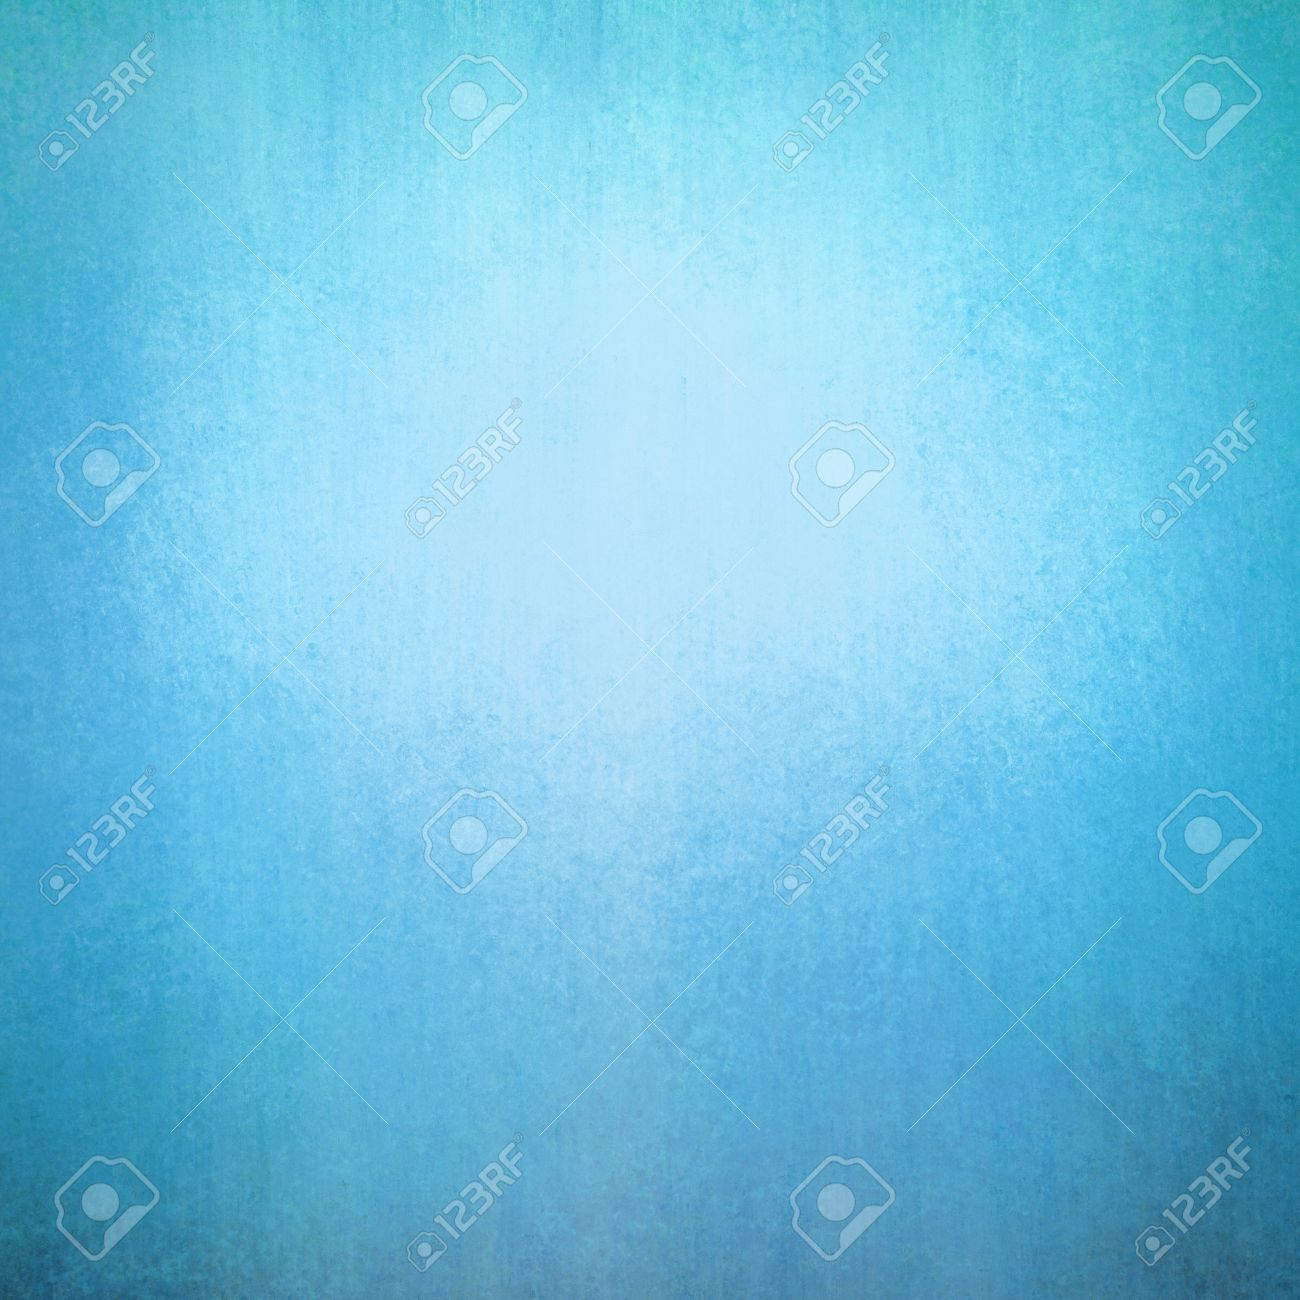 Bright Light Blue Background With Darker Blue Border And Faint ...